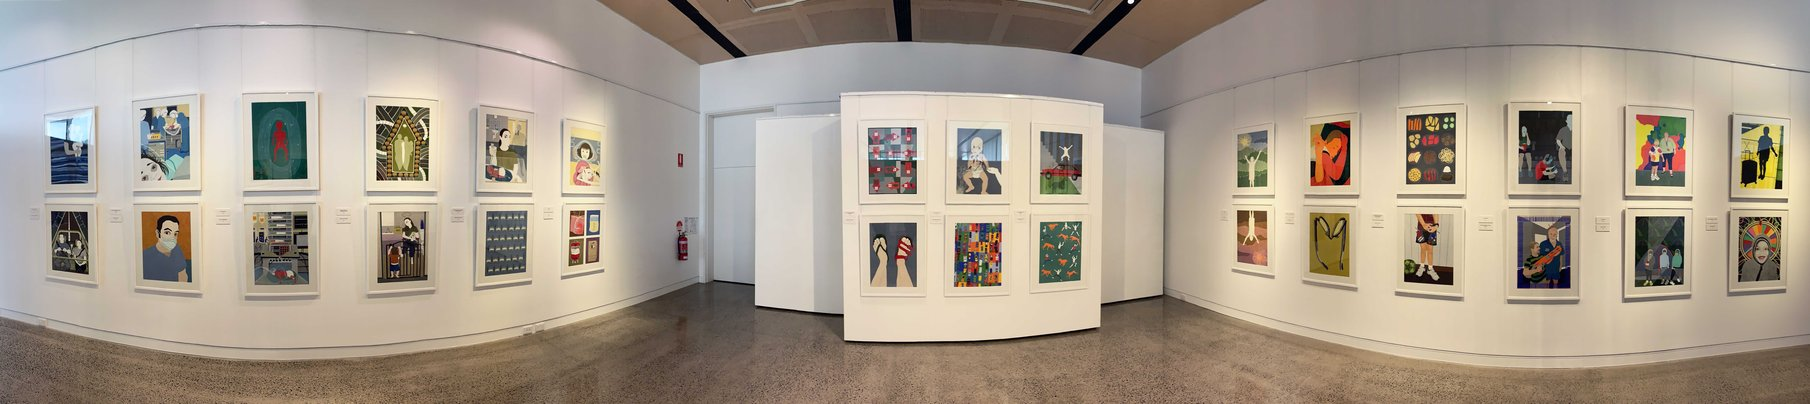 Early Installation View